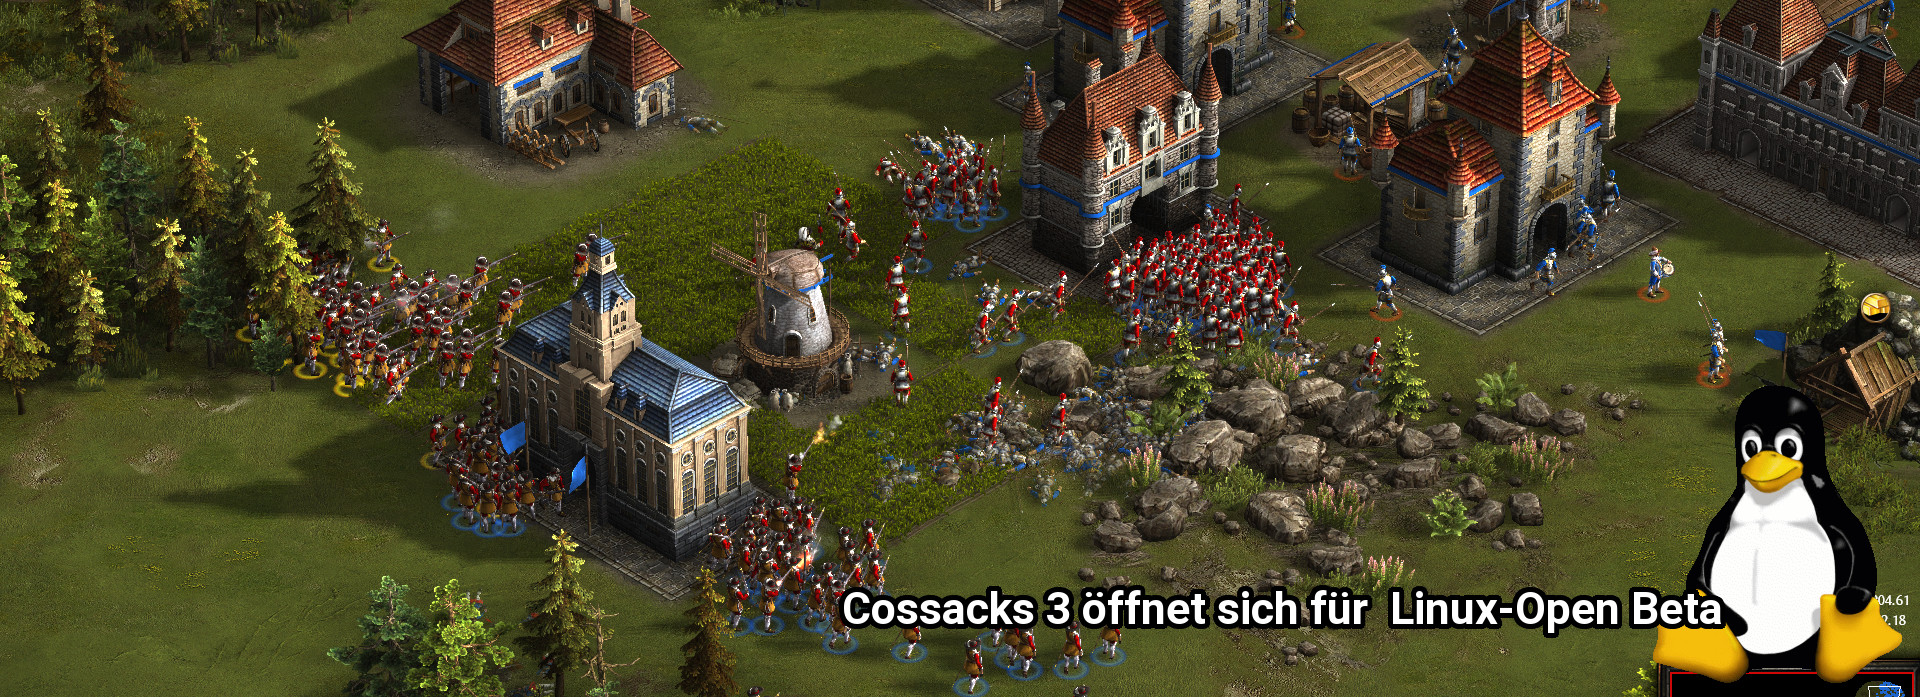 https://www.holarse-linuxgaming.de/sites/default/files/2017-06-20-1/cossacks3_openbeta_teaser.jpg